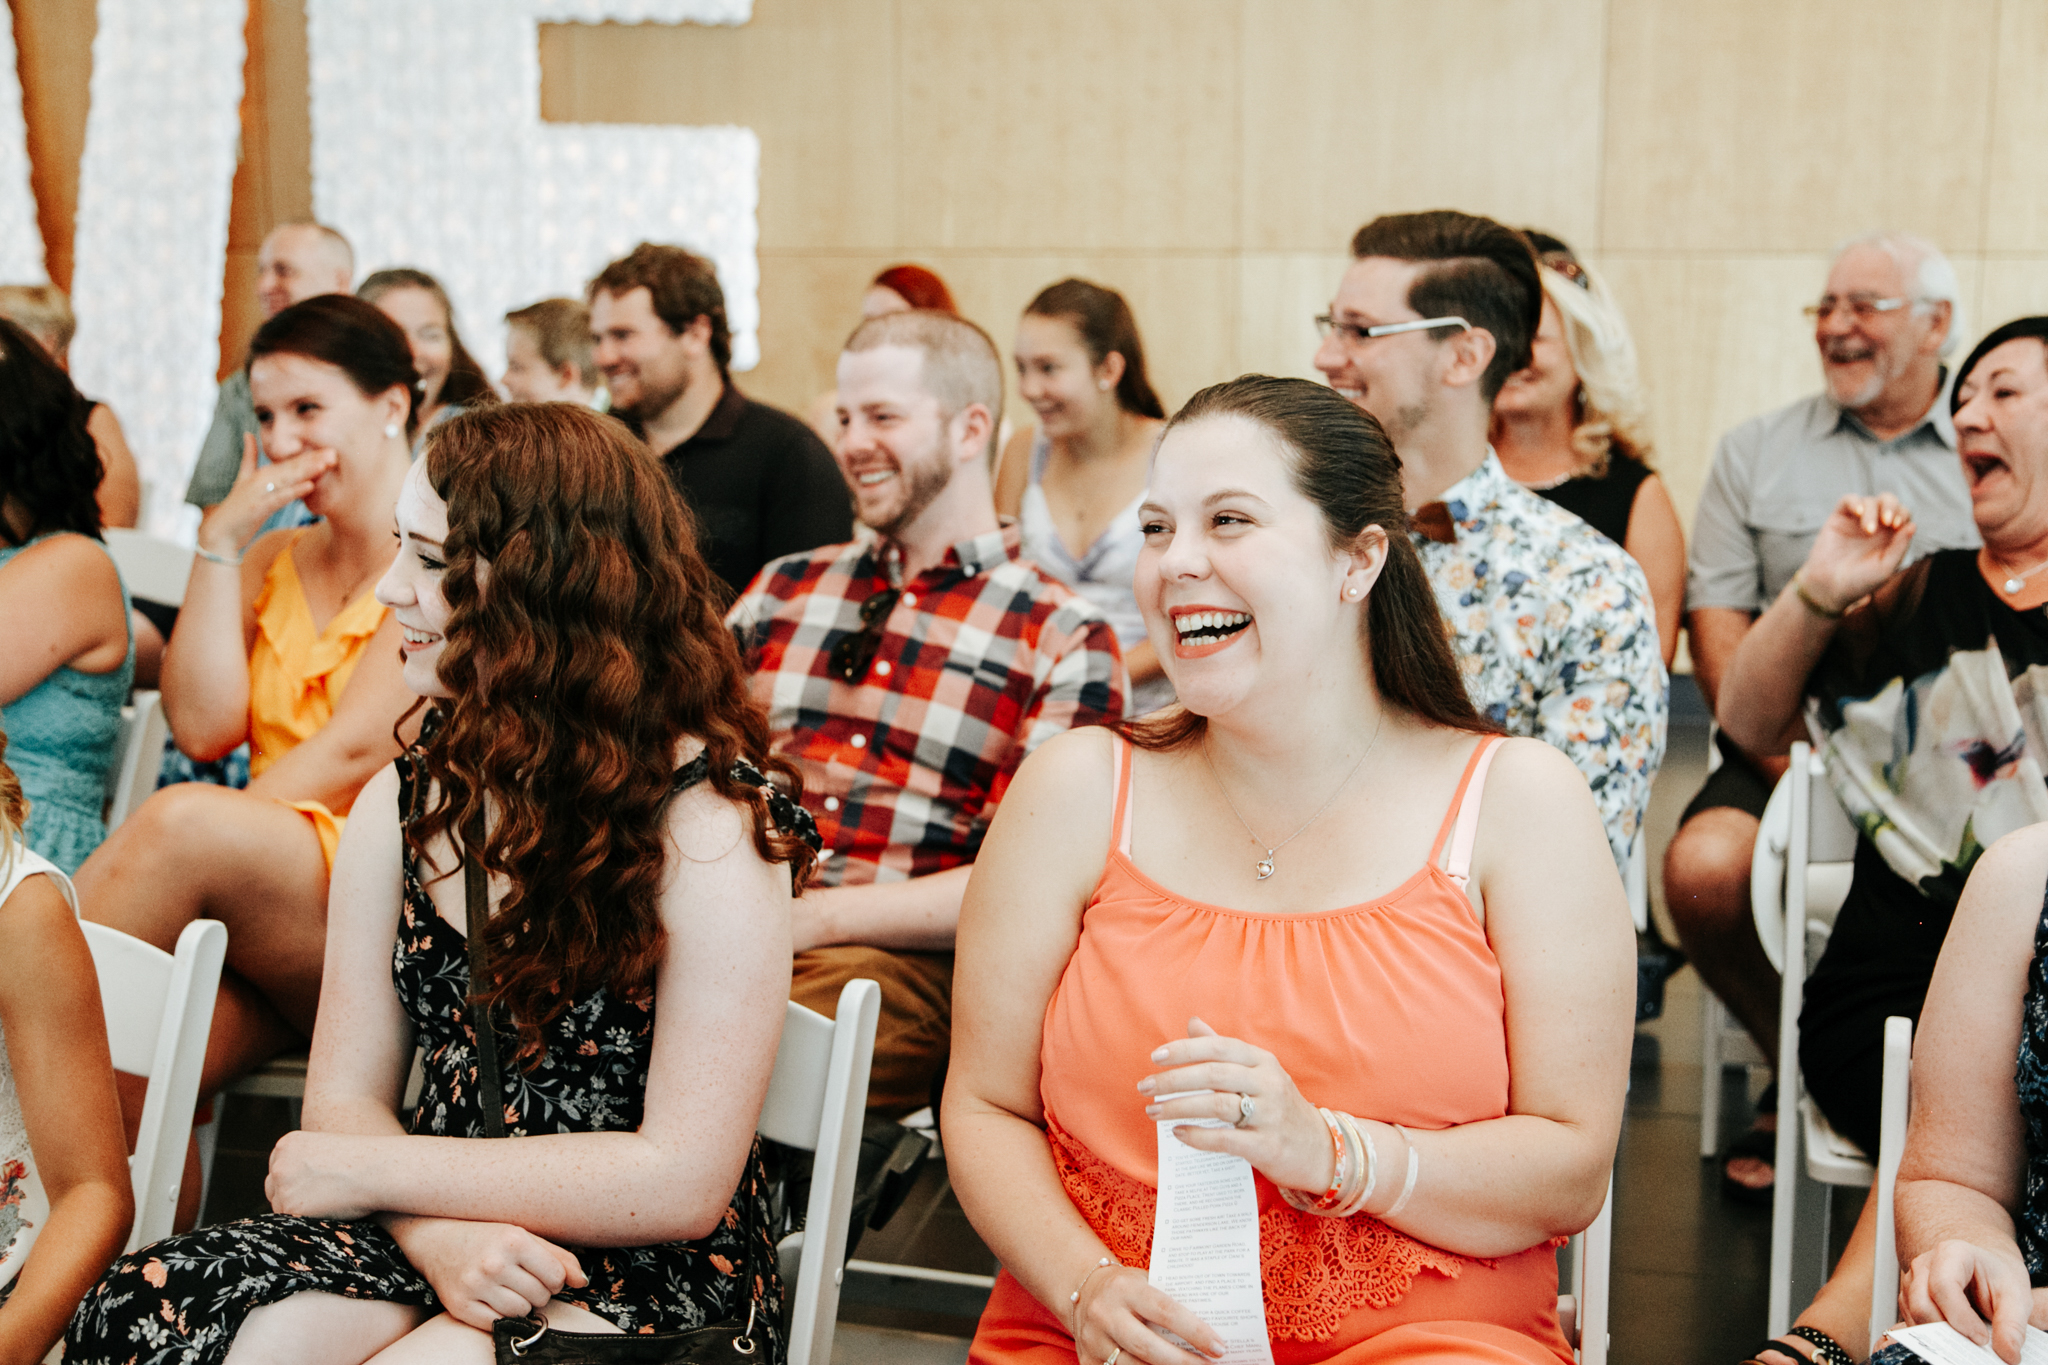 lethbridge-wedding-photographer-love-and-be-loved-photography-trent-danielle-galt-reception-picture-image-photo-50.jpg